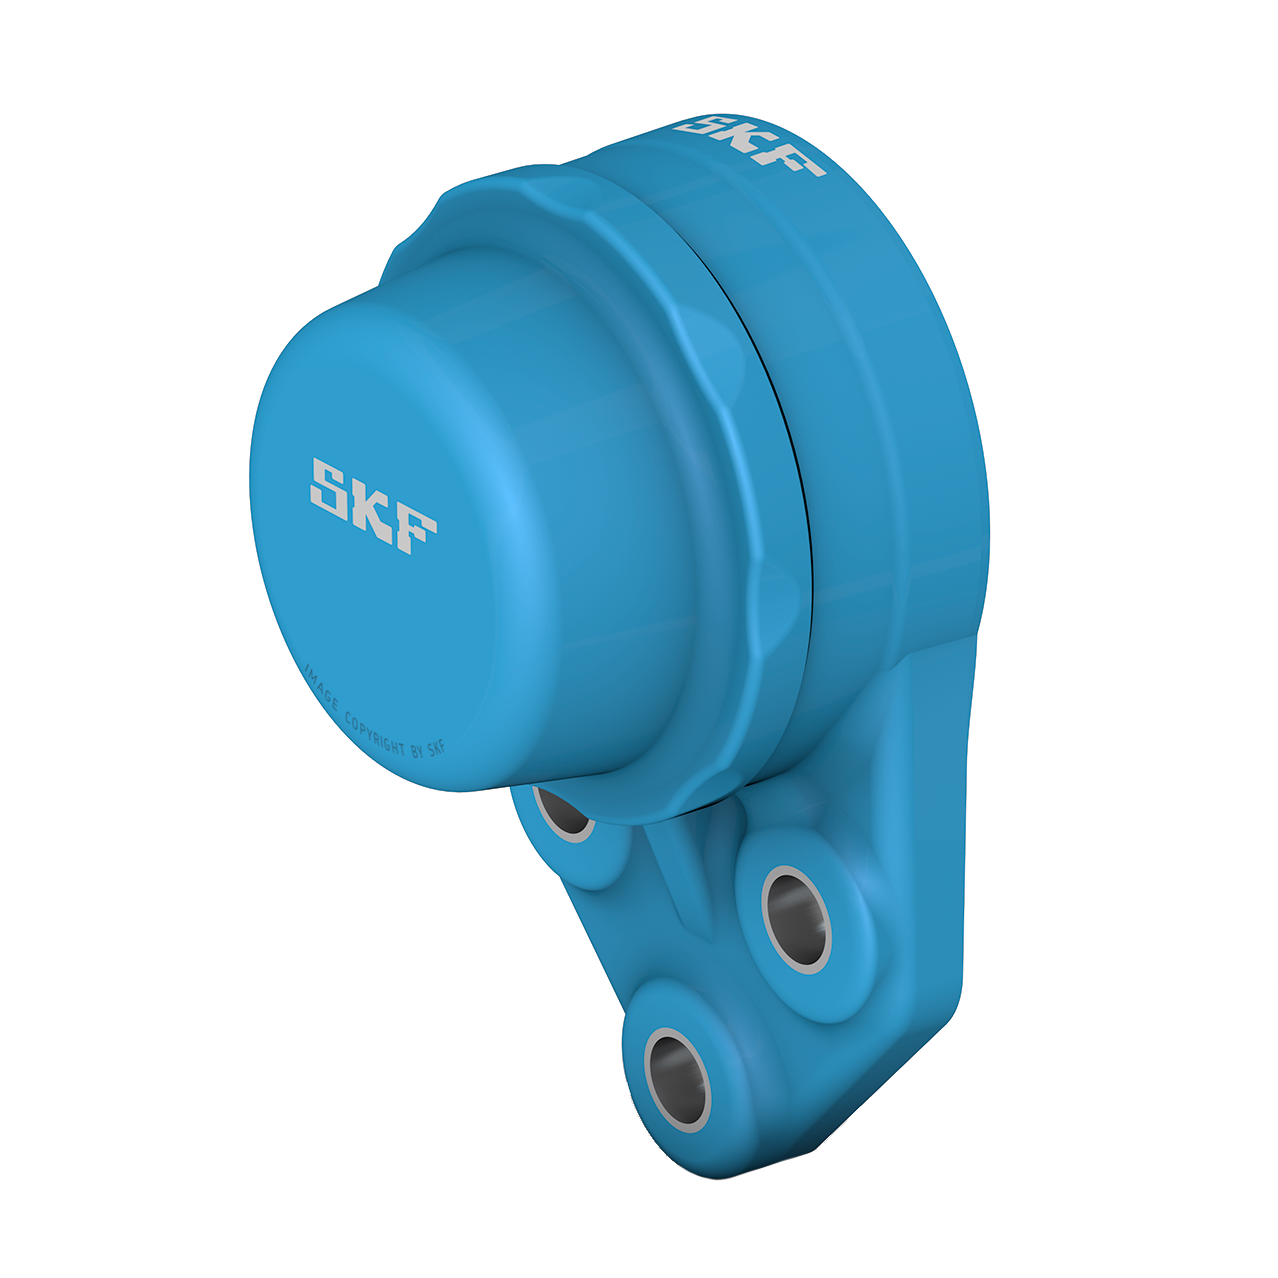 SKF Food line ball bearing units - Blue Range 3-bolt flange design